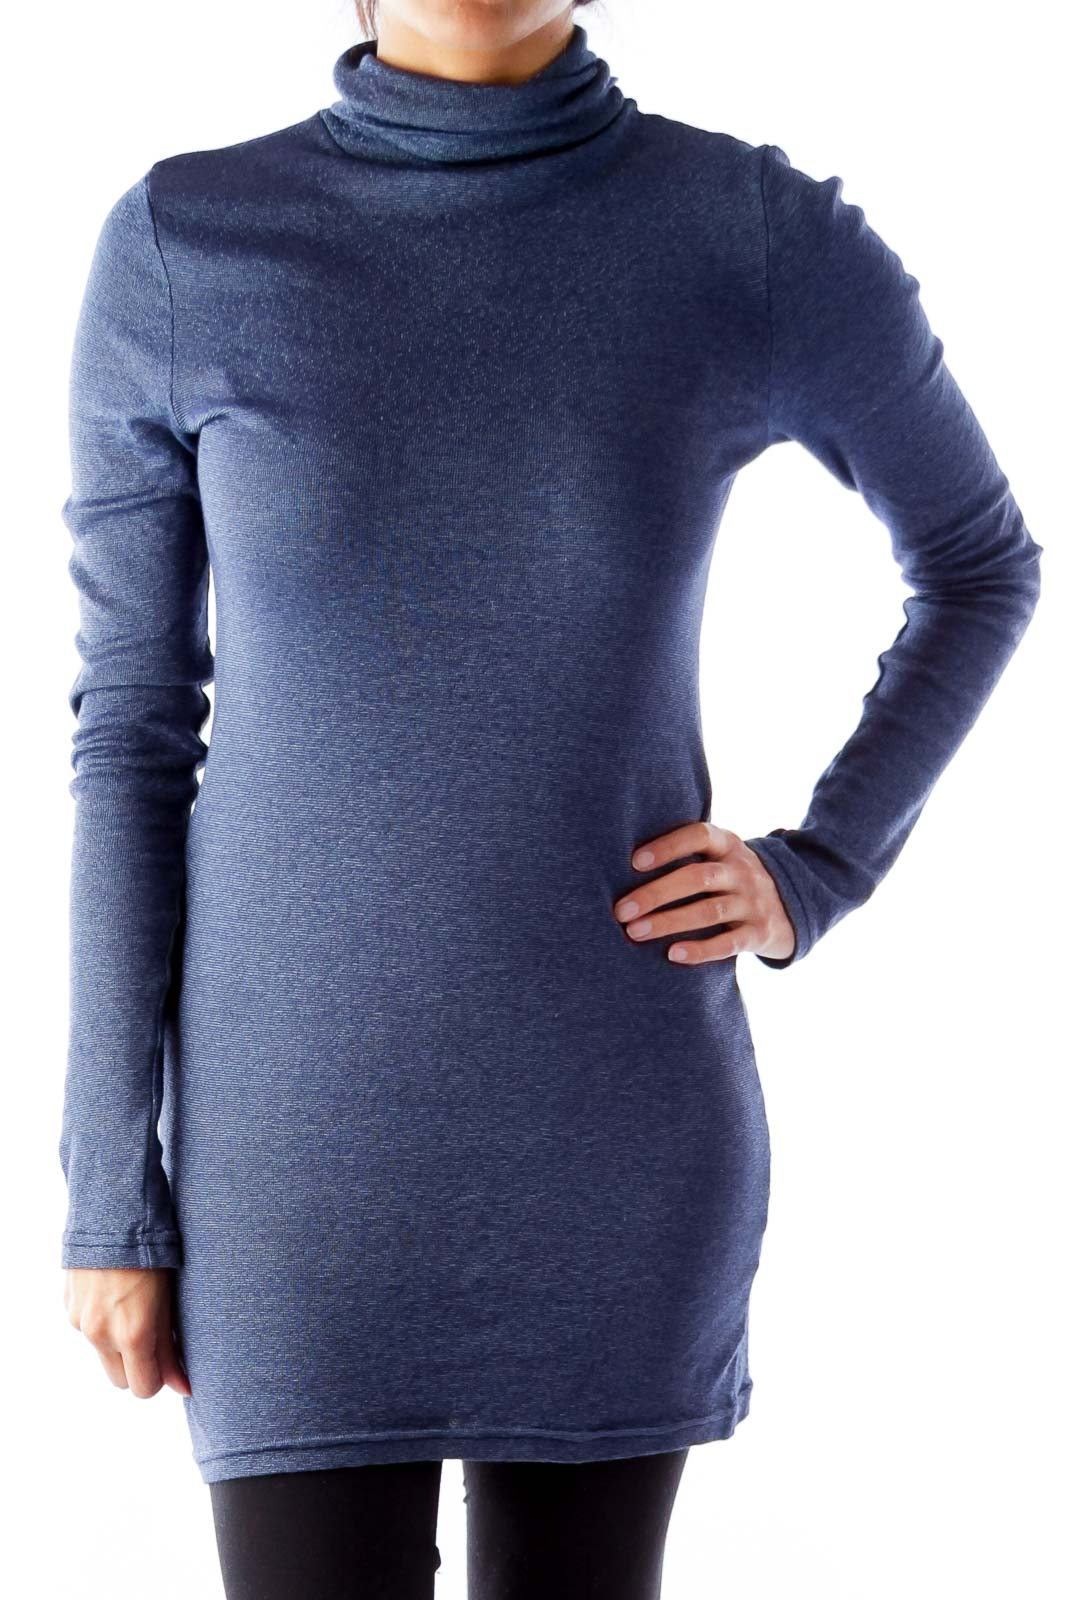 Blue Metallic Turtleneck Shirt